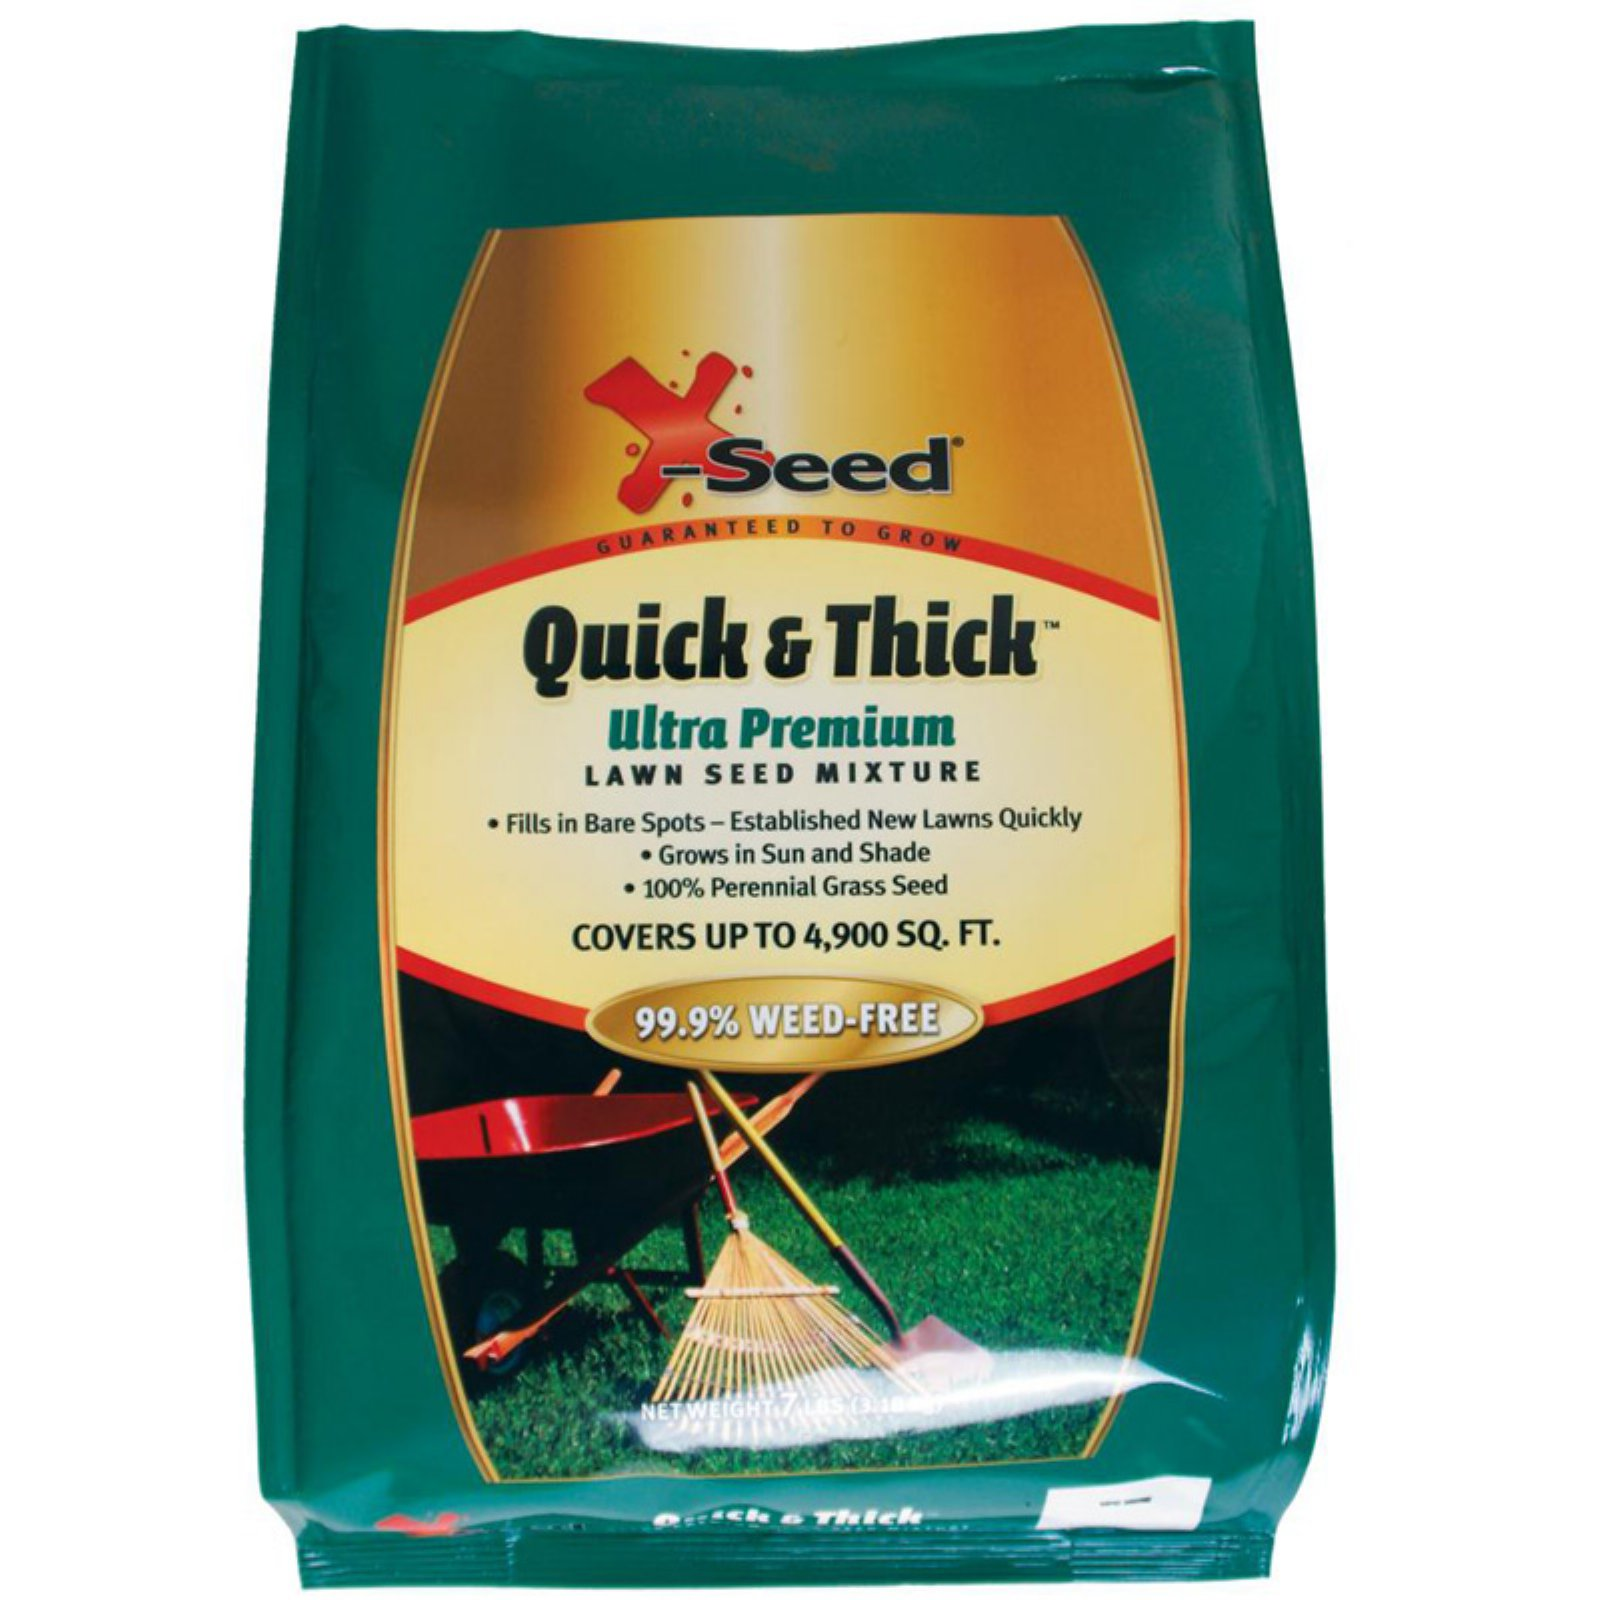 X-Seed 7 lbs. Quick and Thick Lawn Seed Mixture